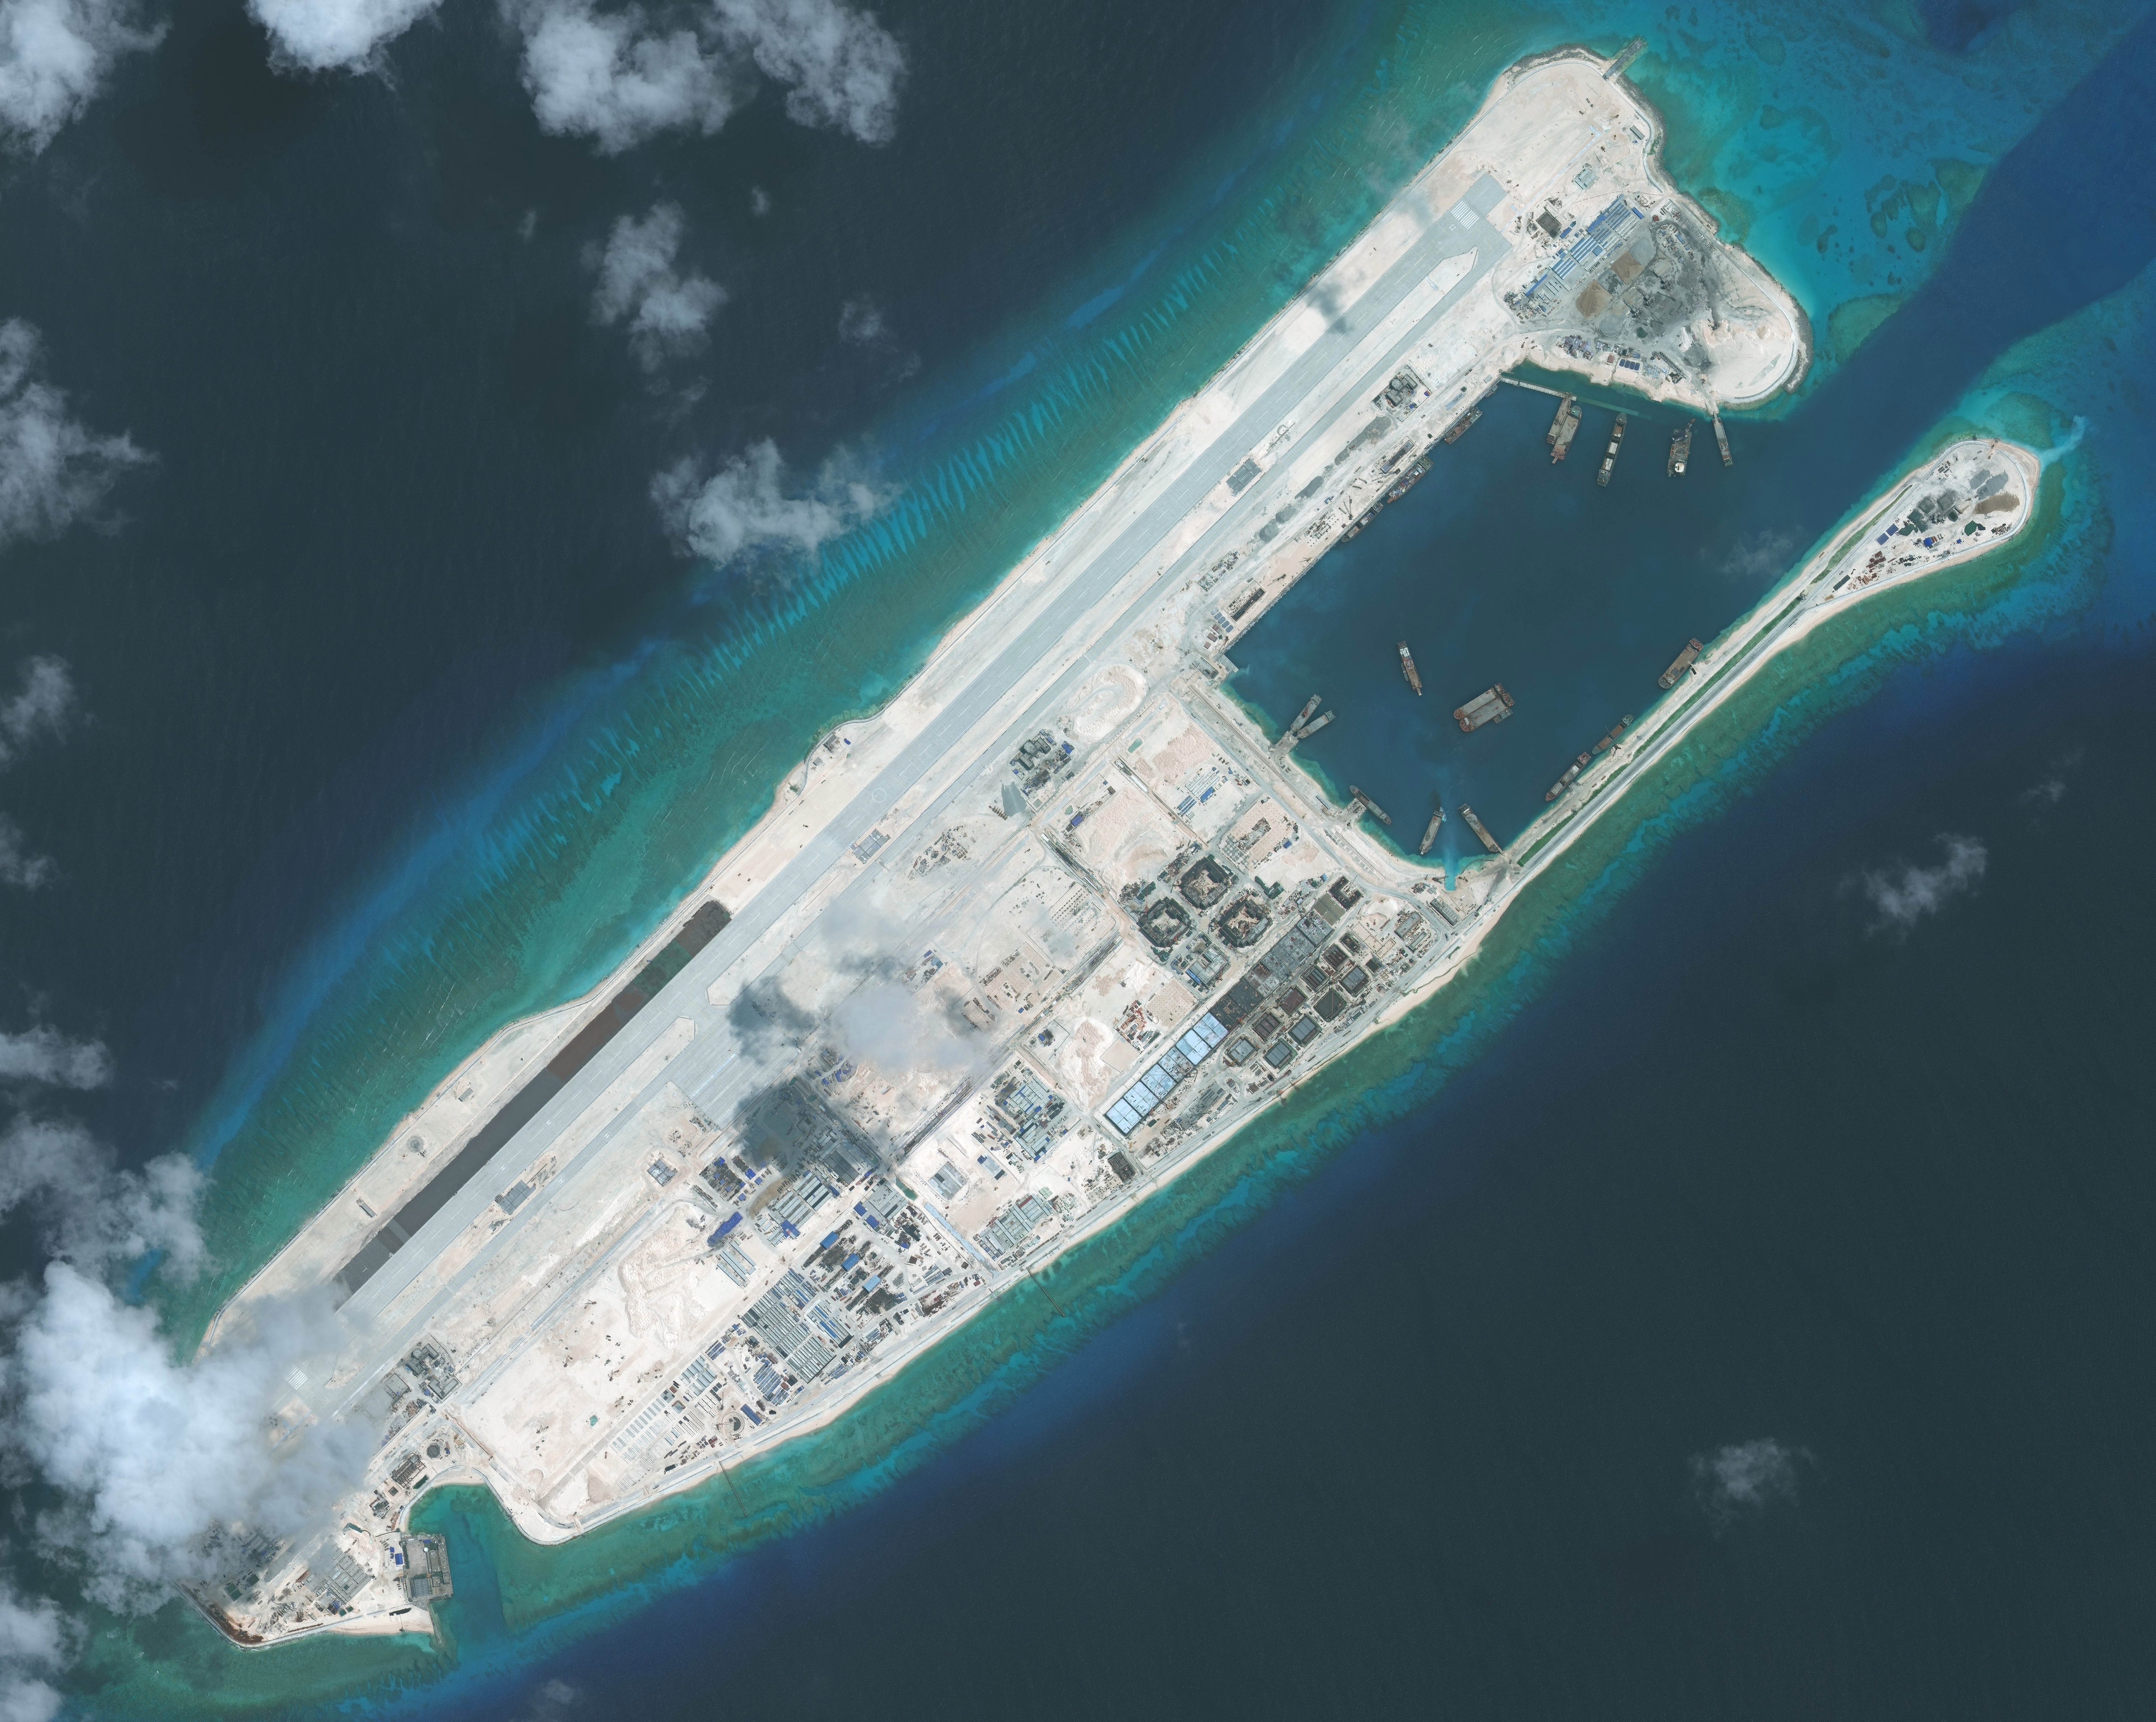 DigitalGlobe imagery of the nearly completed construction within the Fiery Cross Reef located in the South China Sea